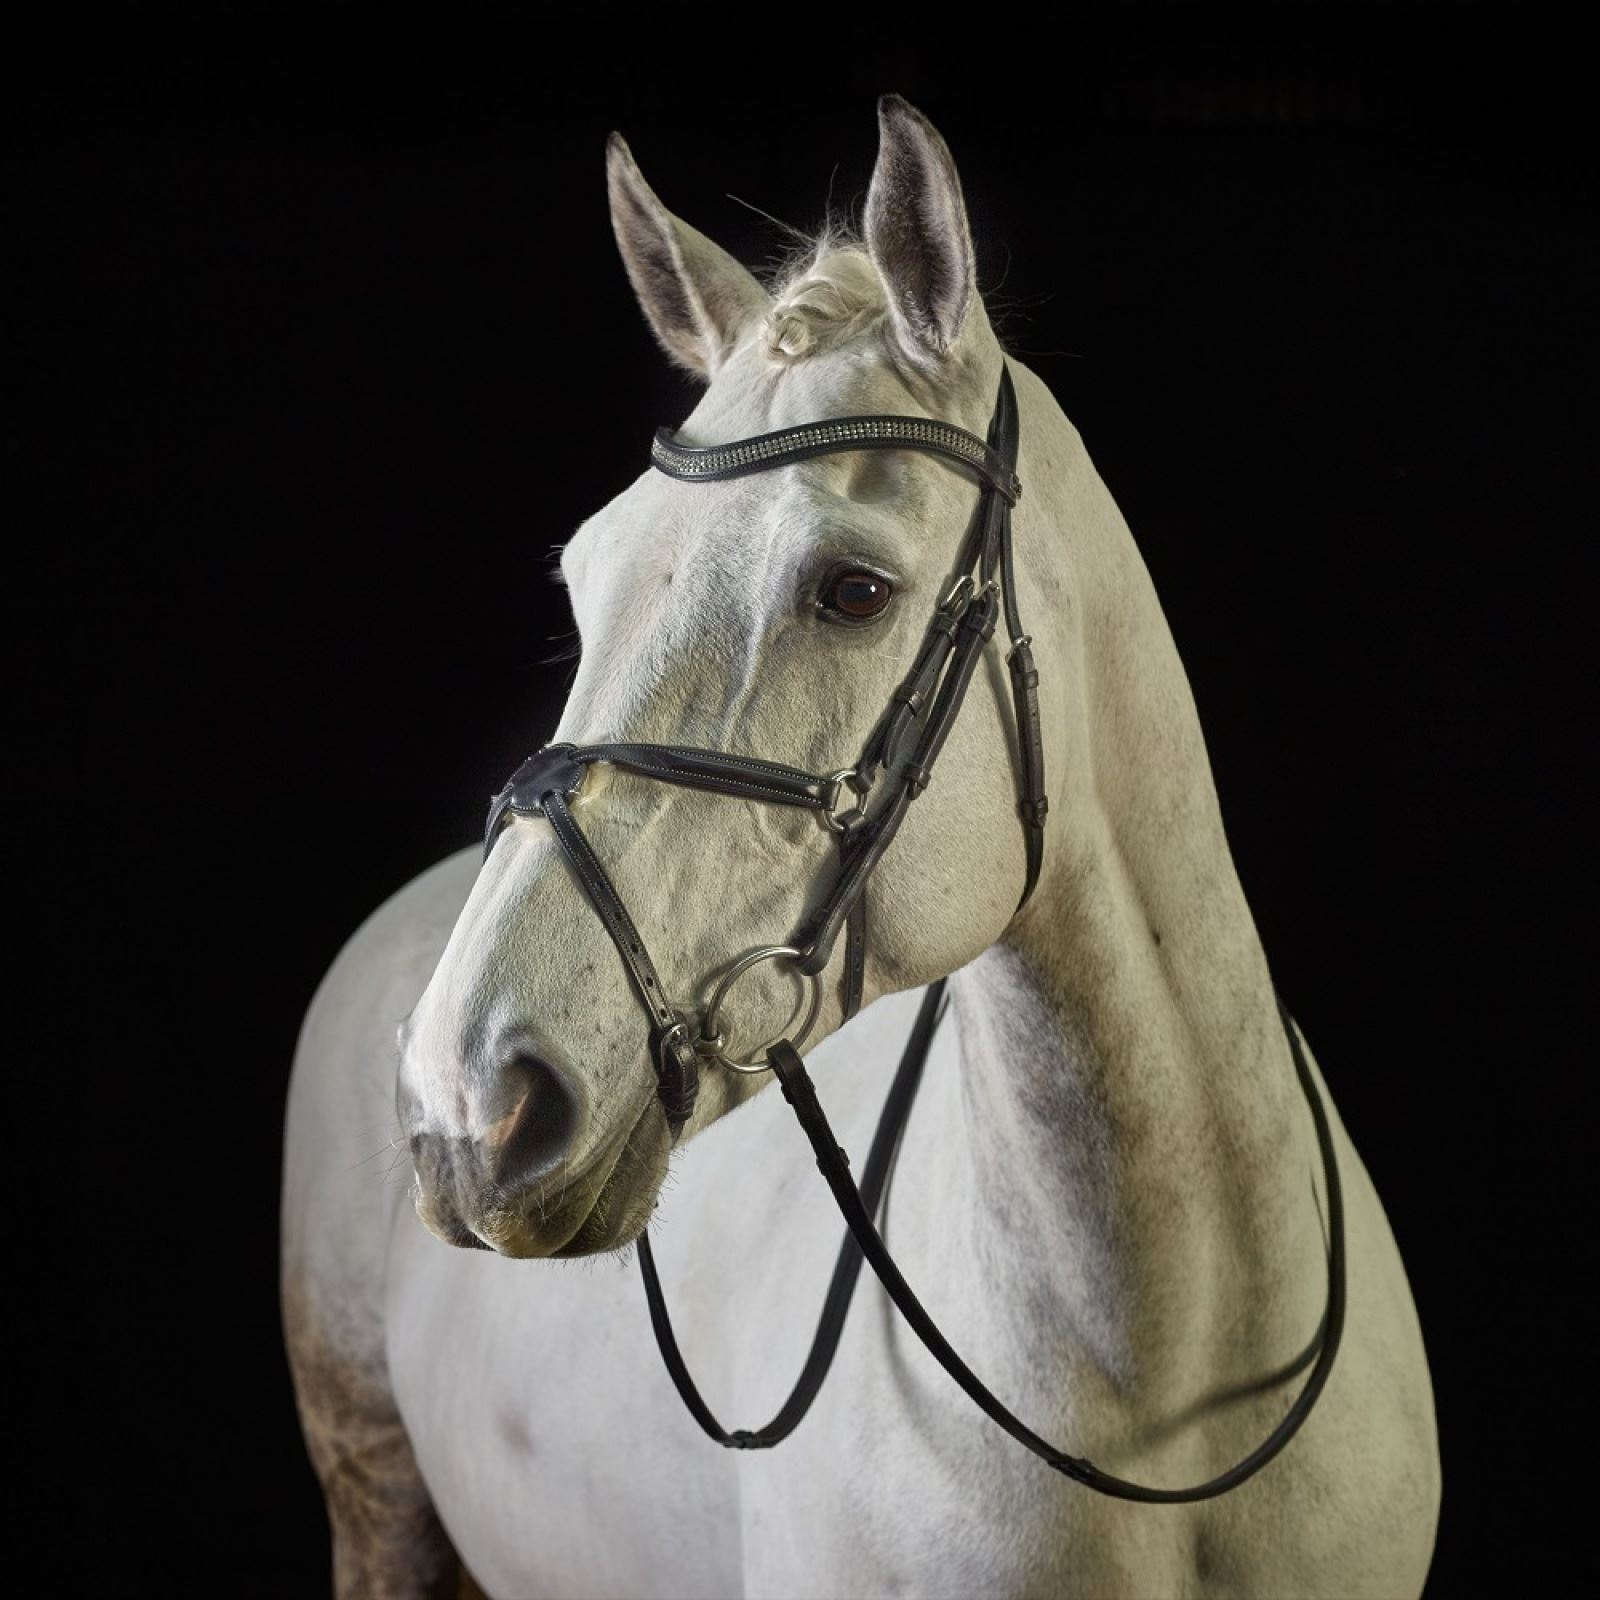 GFS Crystal Grackle Bridle with Rubber Reins